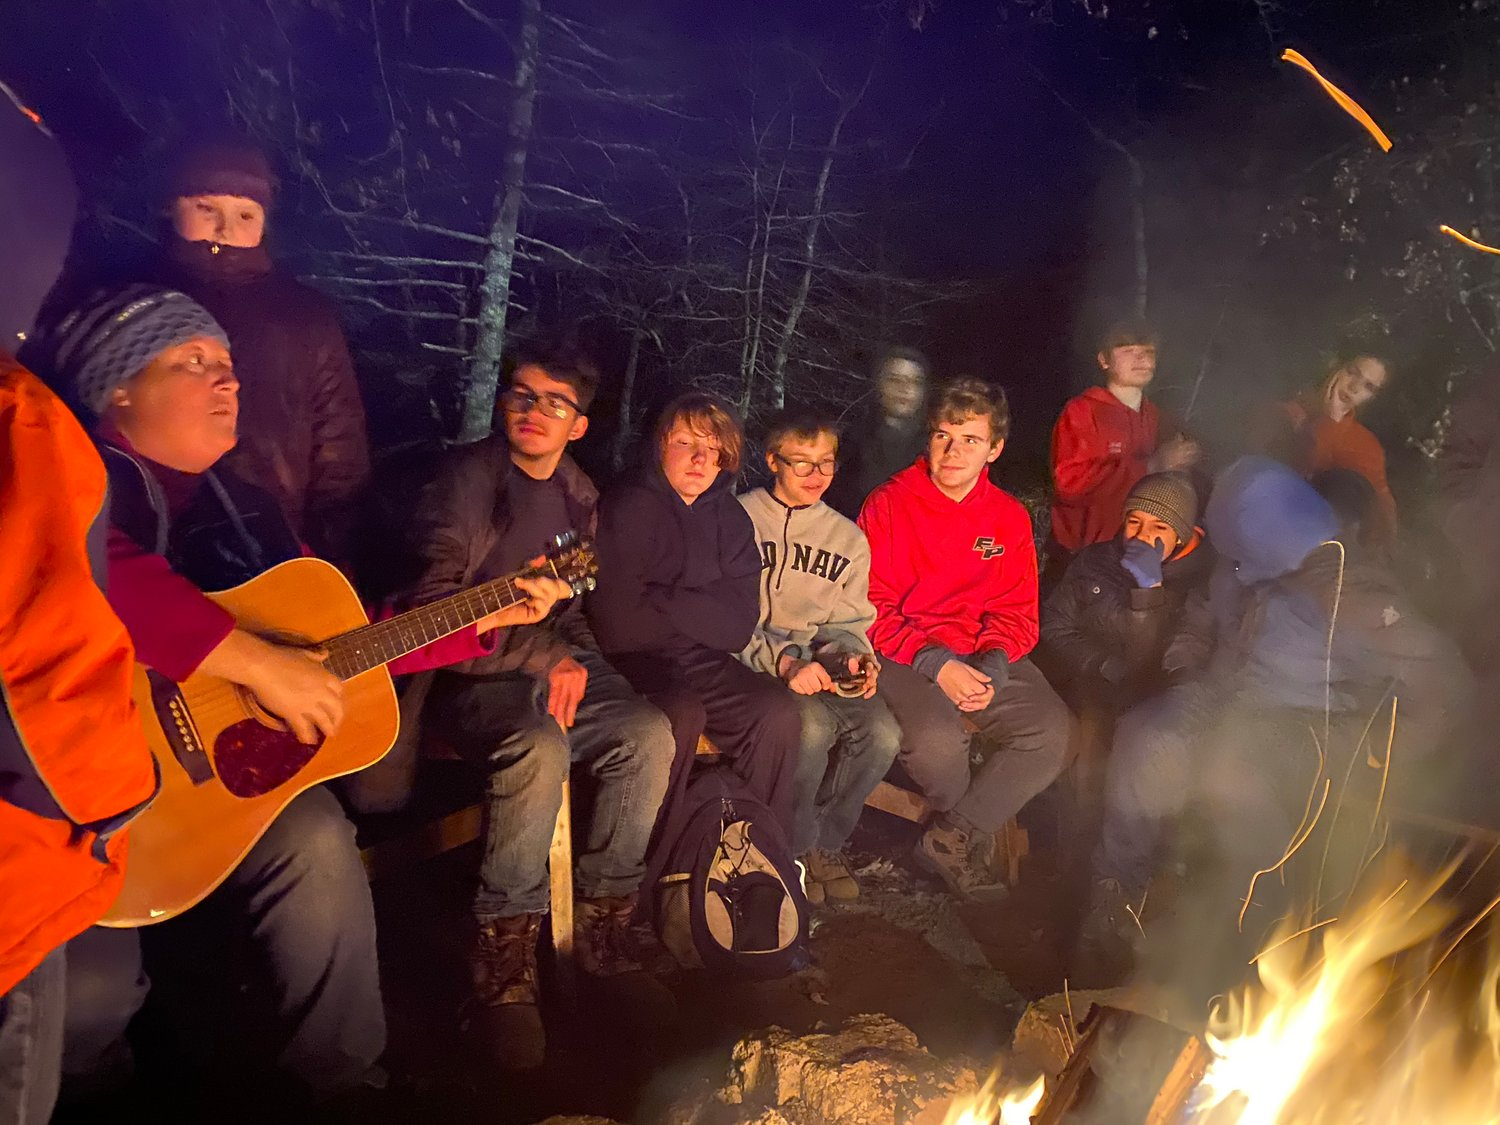 Campfire singing at the Thanksgiving campout.